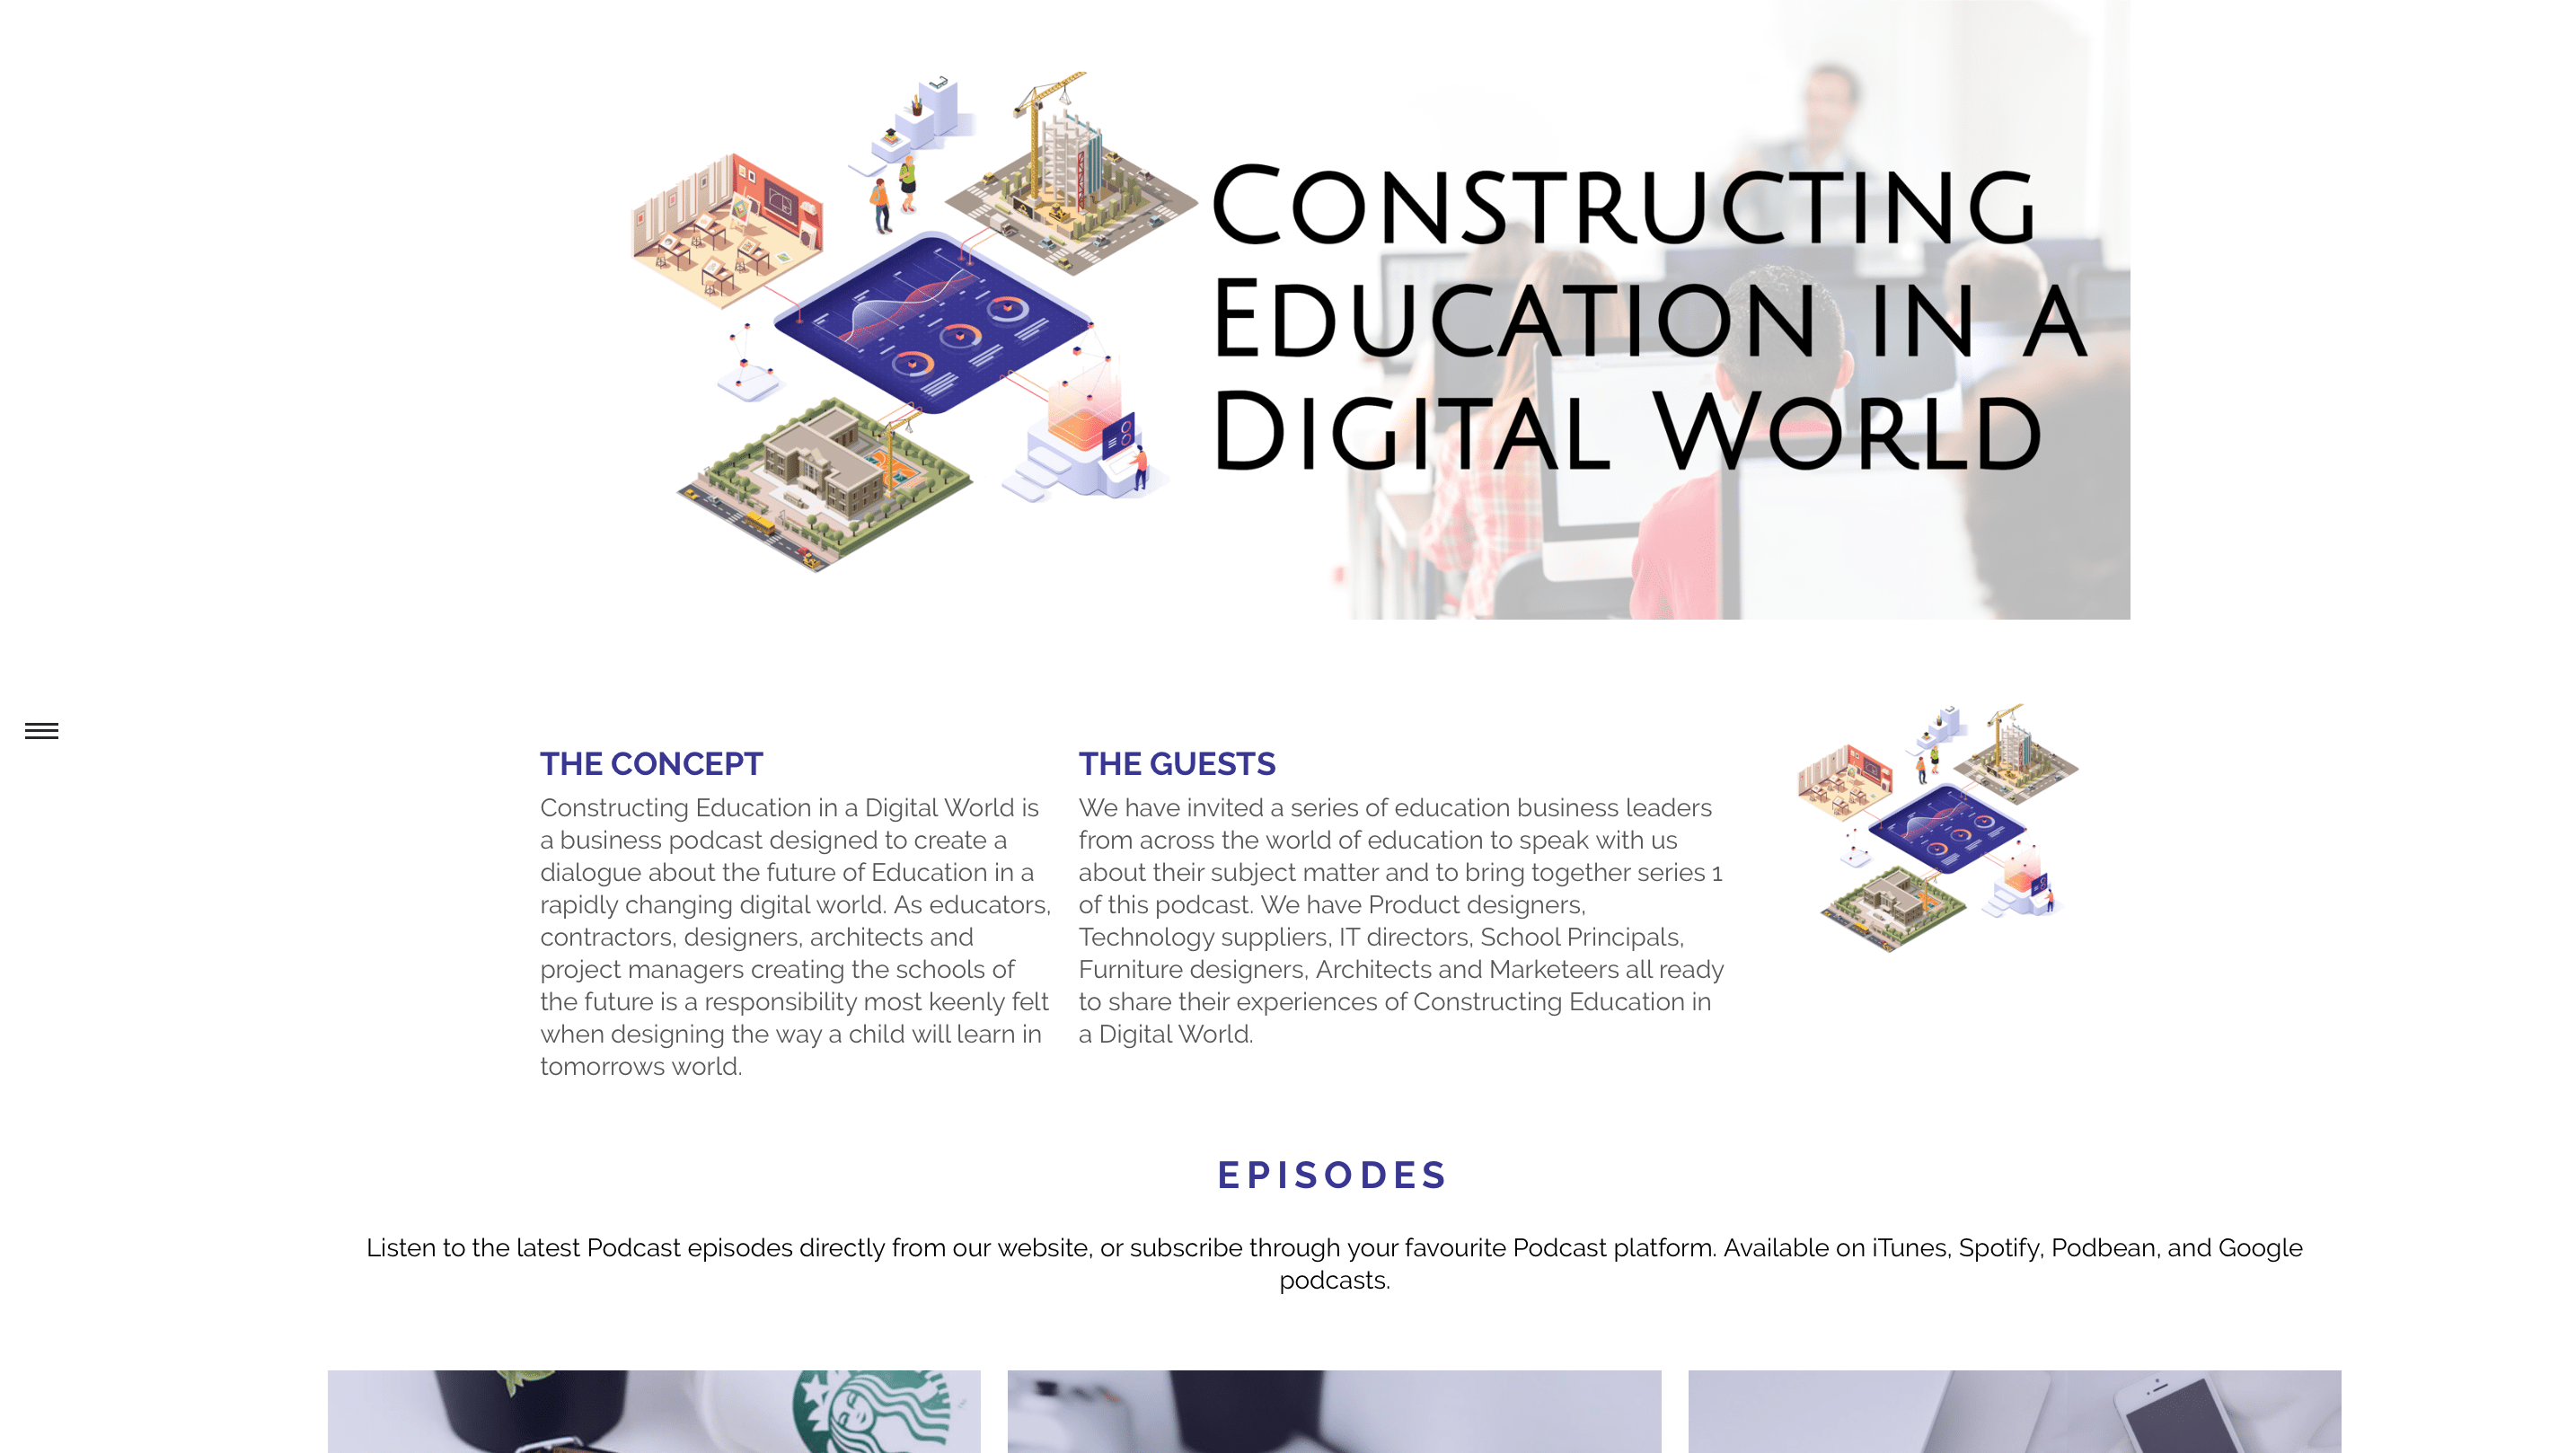 Constructing Education in a Digital World